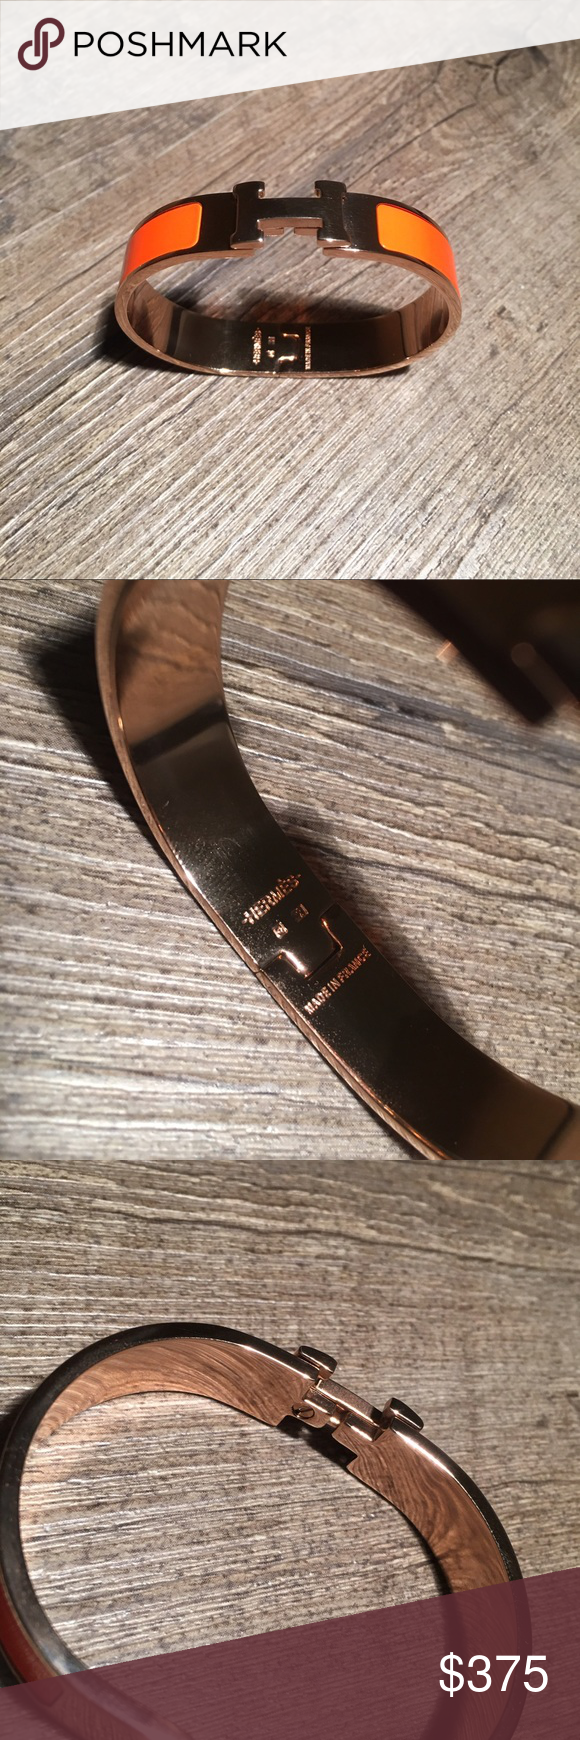 Hermes clic h bracelet this is a beautiful classic and timeless